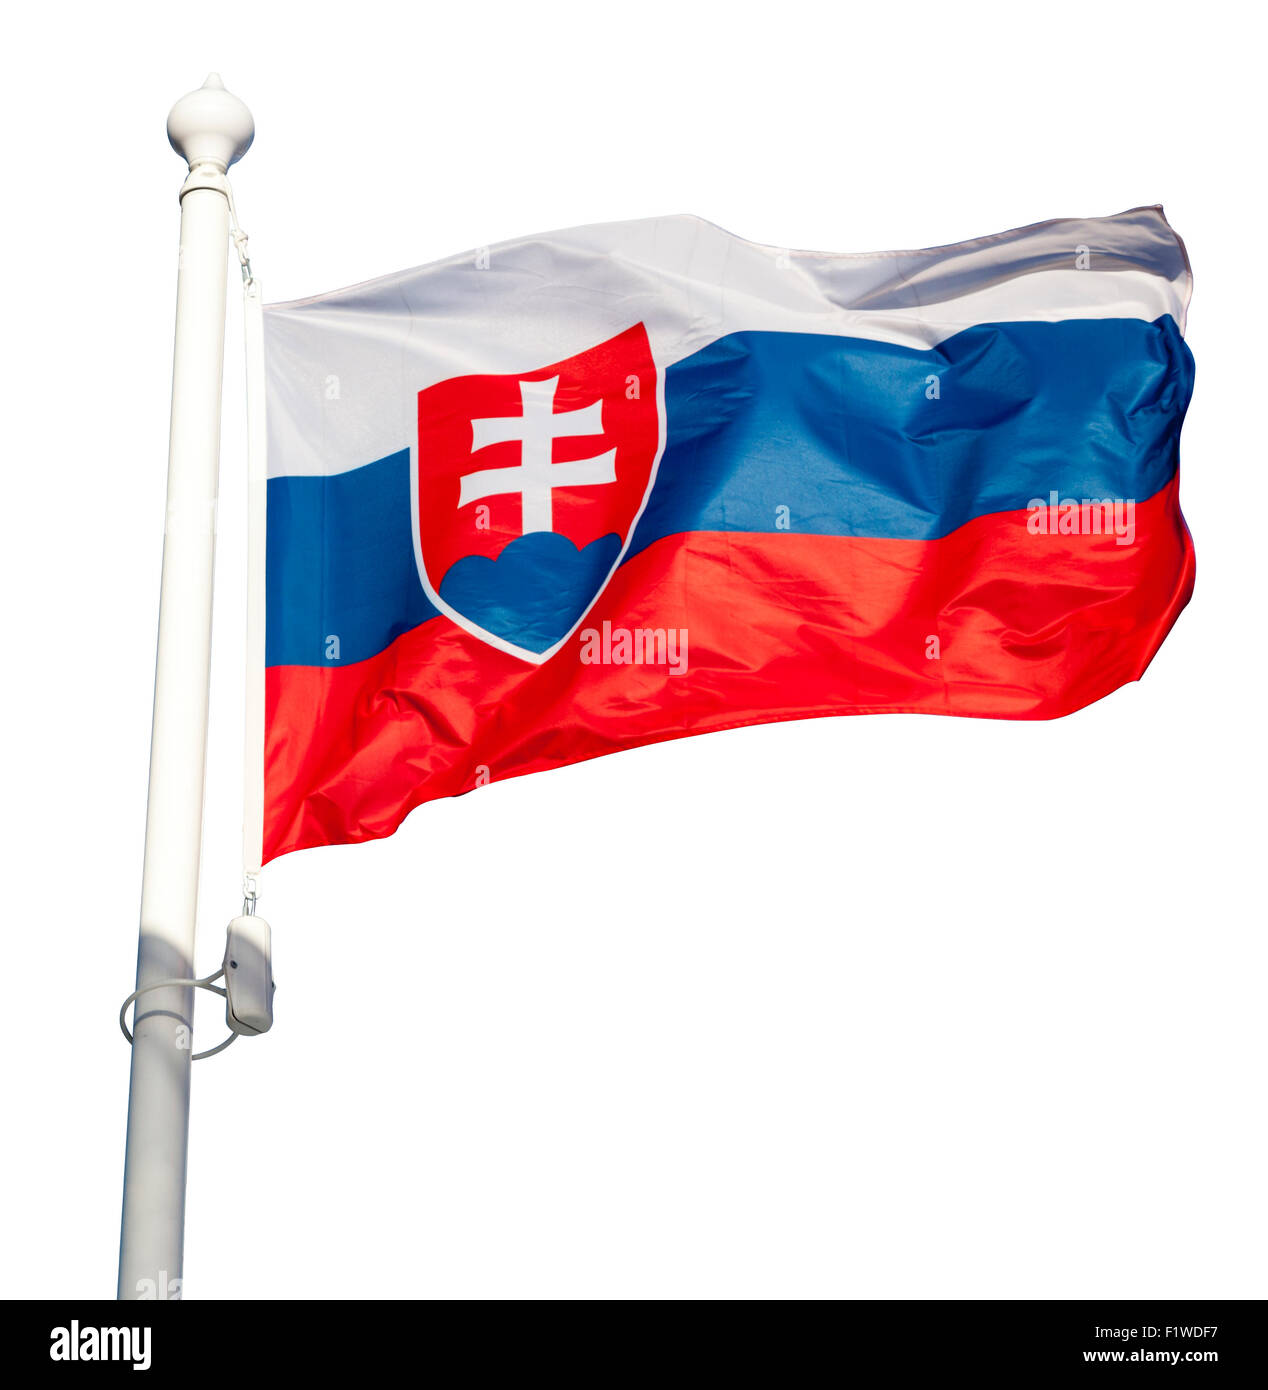 Waving flag of Slovakia isolated on white background with clipping path - Stock Image